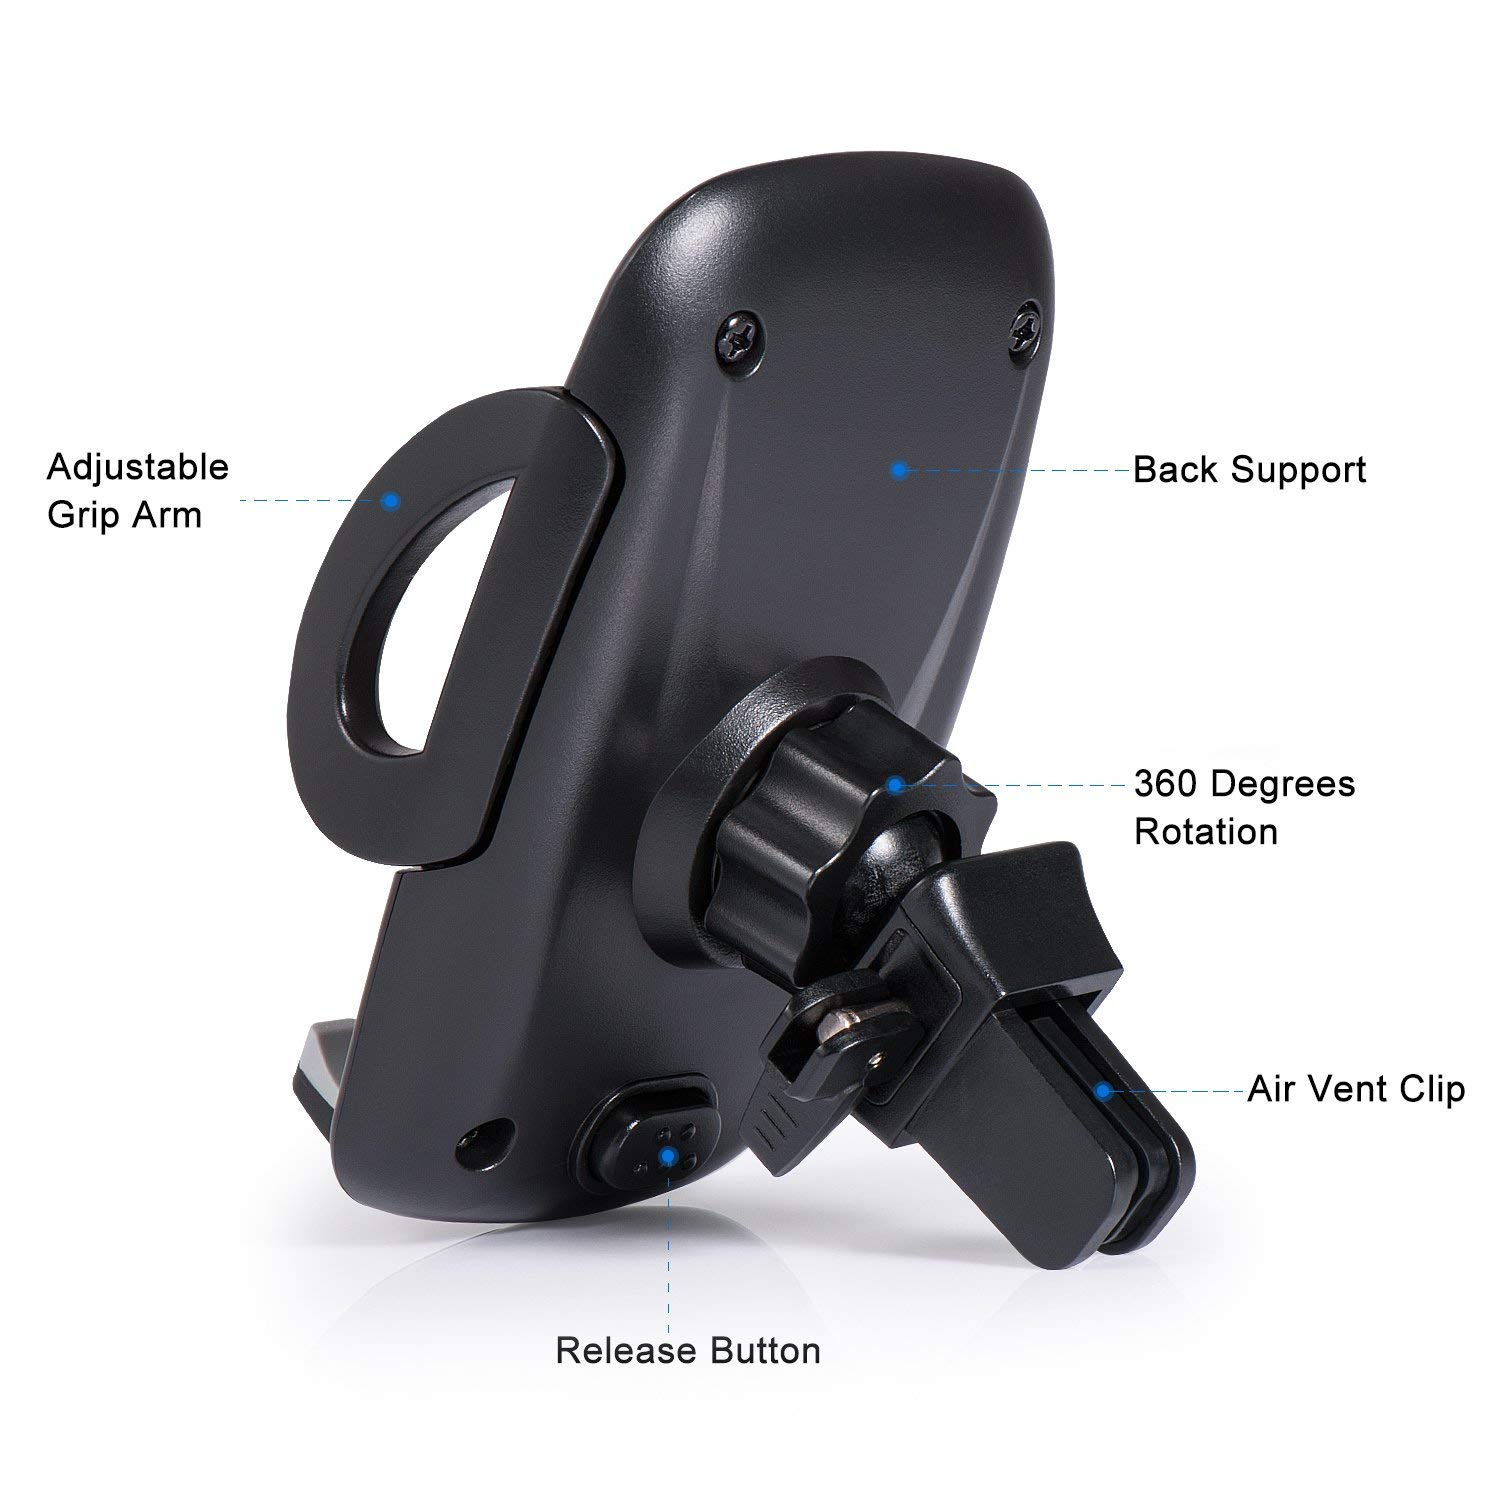 Universal Smartphone Car Air Vent Mount Holder Cradle,for XS XS Max X 8 8 Plus 7 7 Plus SE 6s 6 Plus 6 5s 5 4s 4 Galaxy S6 S5 S4 LG Nexus Sony Nokia and More